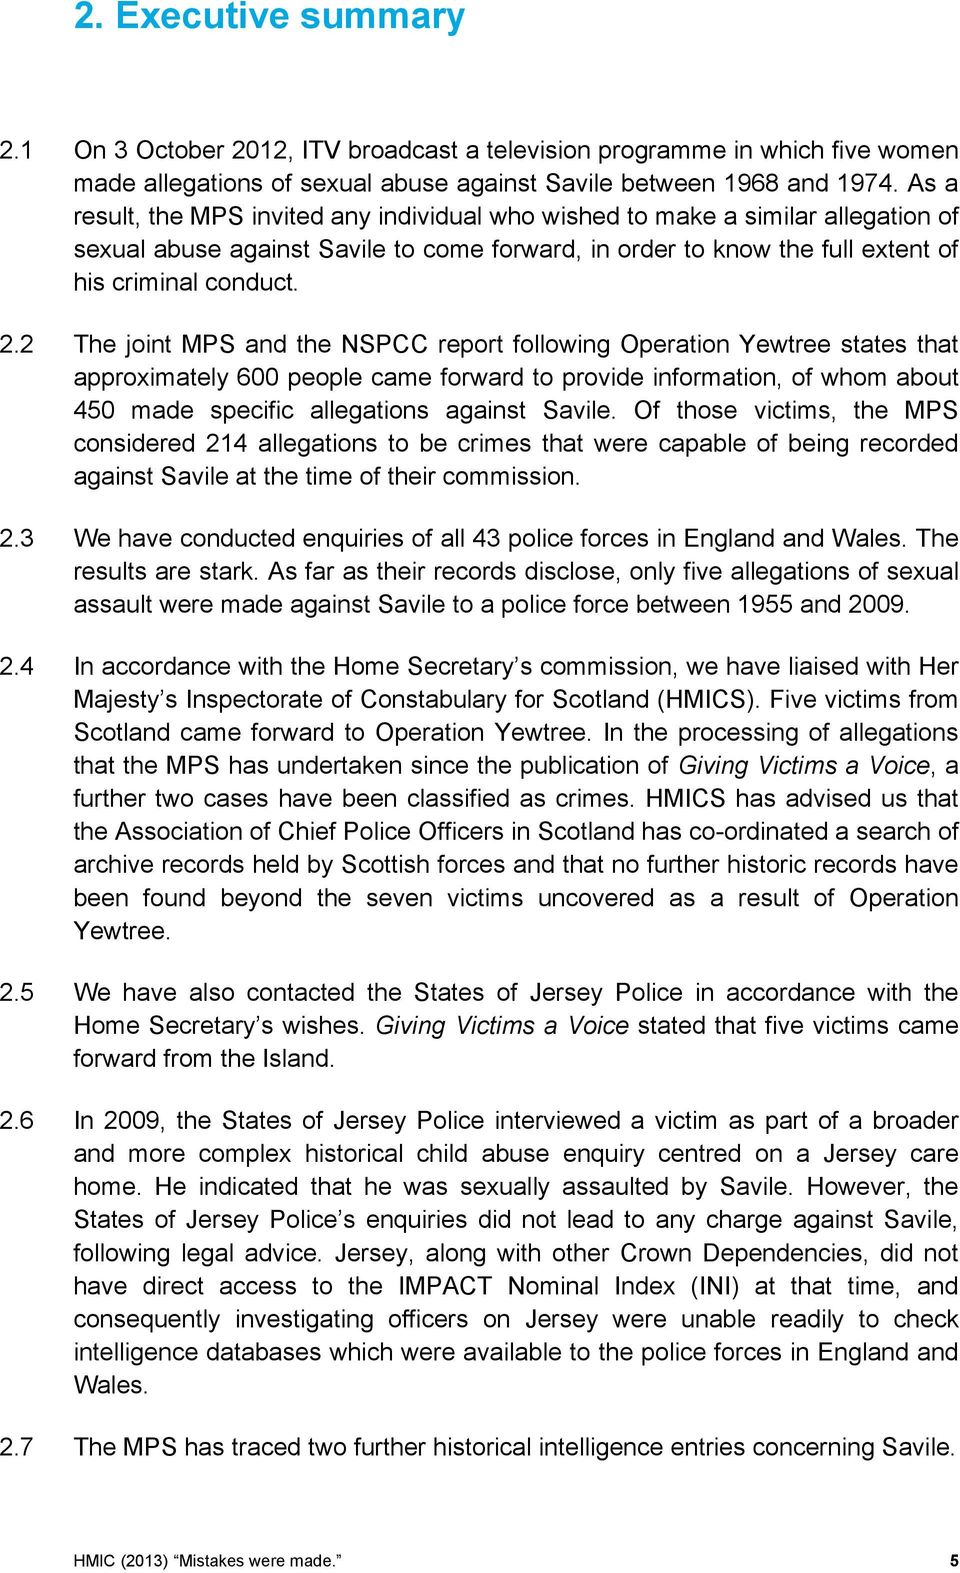 2 The joint MPS and the NSPCC report following Operation Yewtree states that approximately 600 people came forward to provide information, of whom about 450 made specific allegations against Savile.